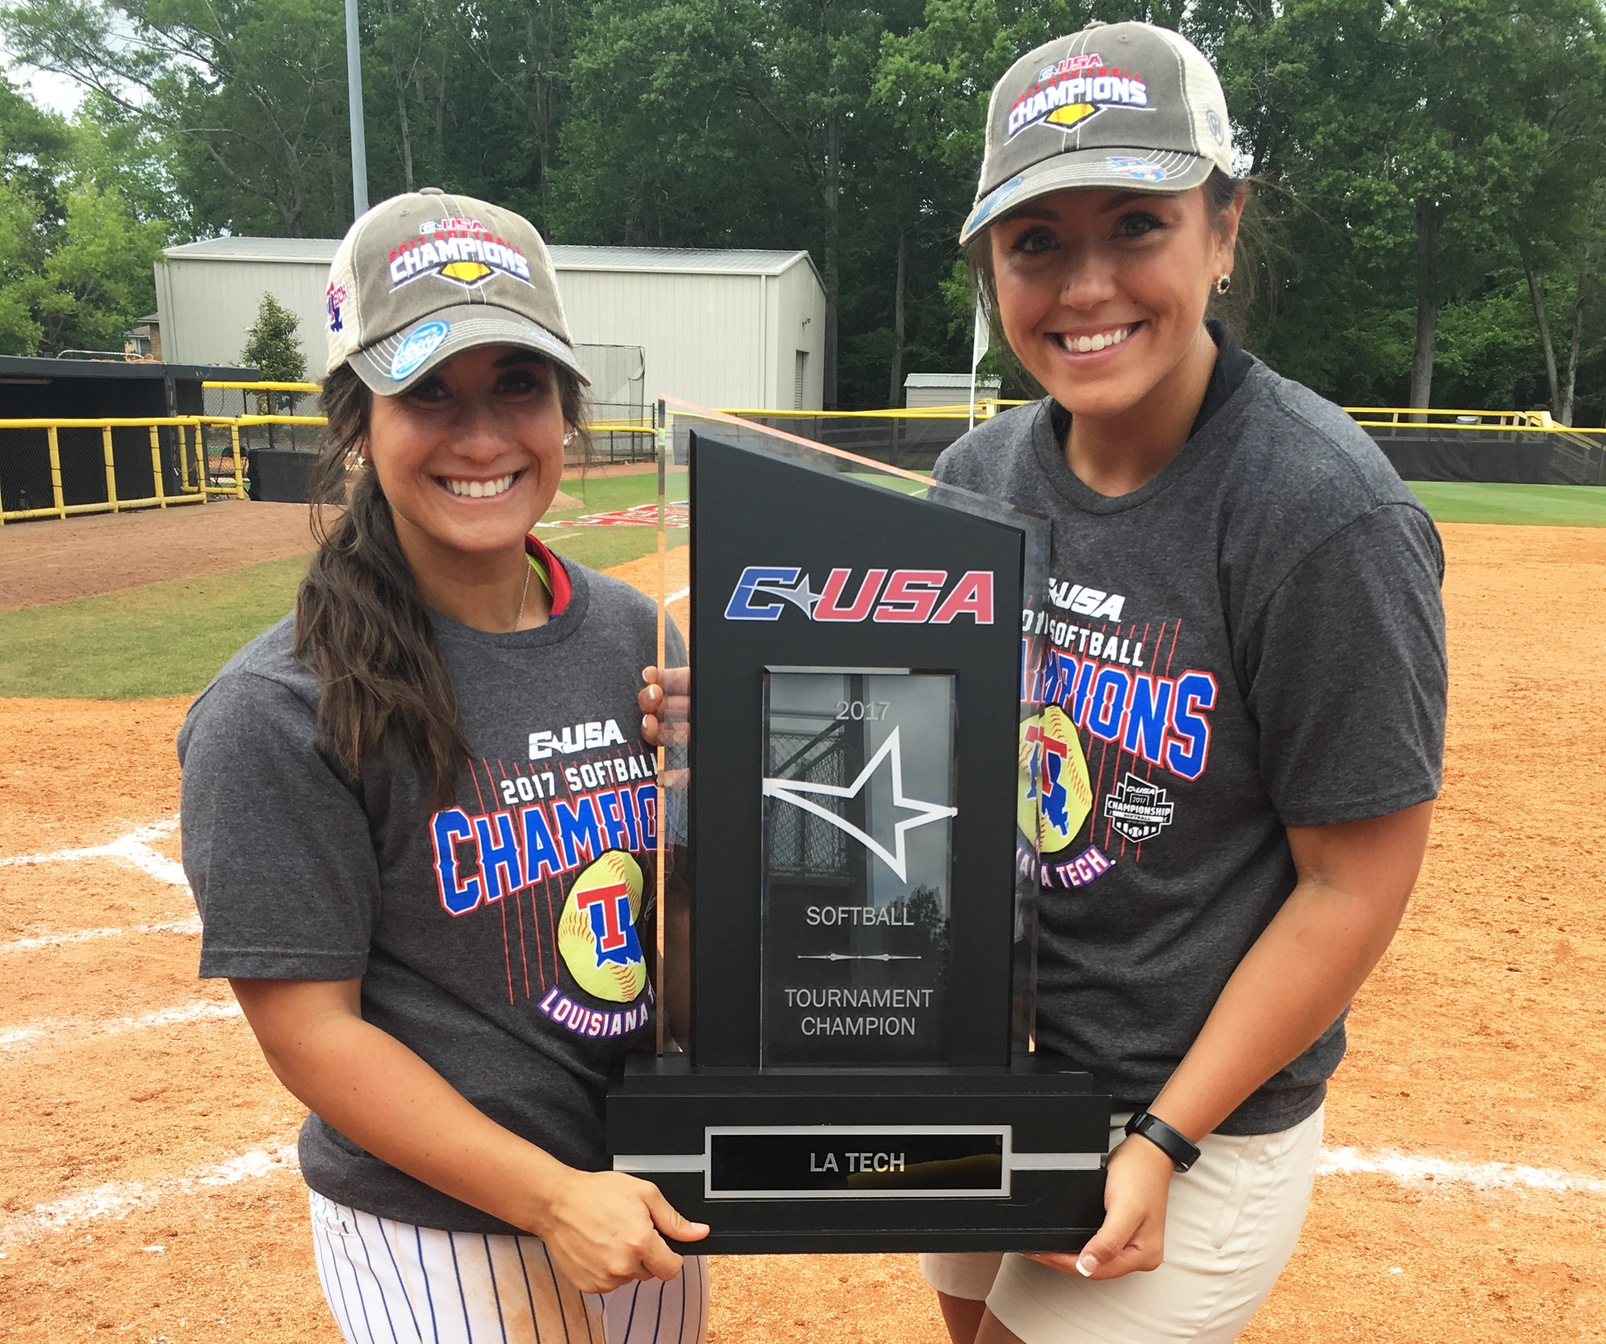 Jessica Ball (left) and Bianca Duran hold the CUSA championship trophy. The two former Cougars will be leading LA Tech at the NCAA national tournament in the Alabama region this weekend. Ball is a senior for LA Tech while Duran is an assistant coach.